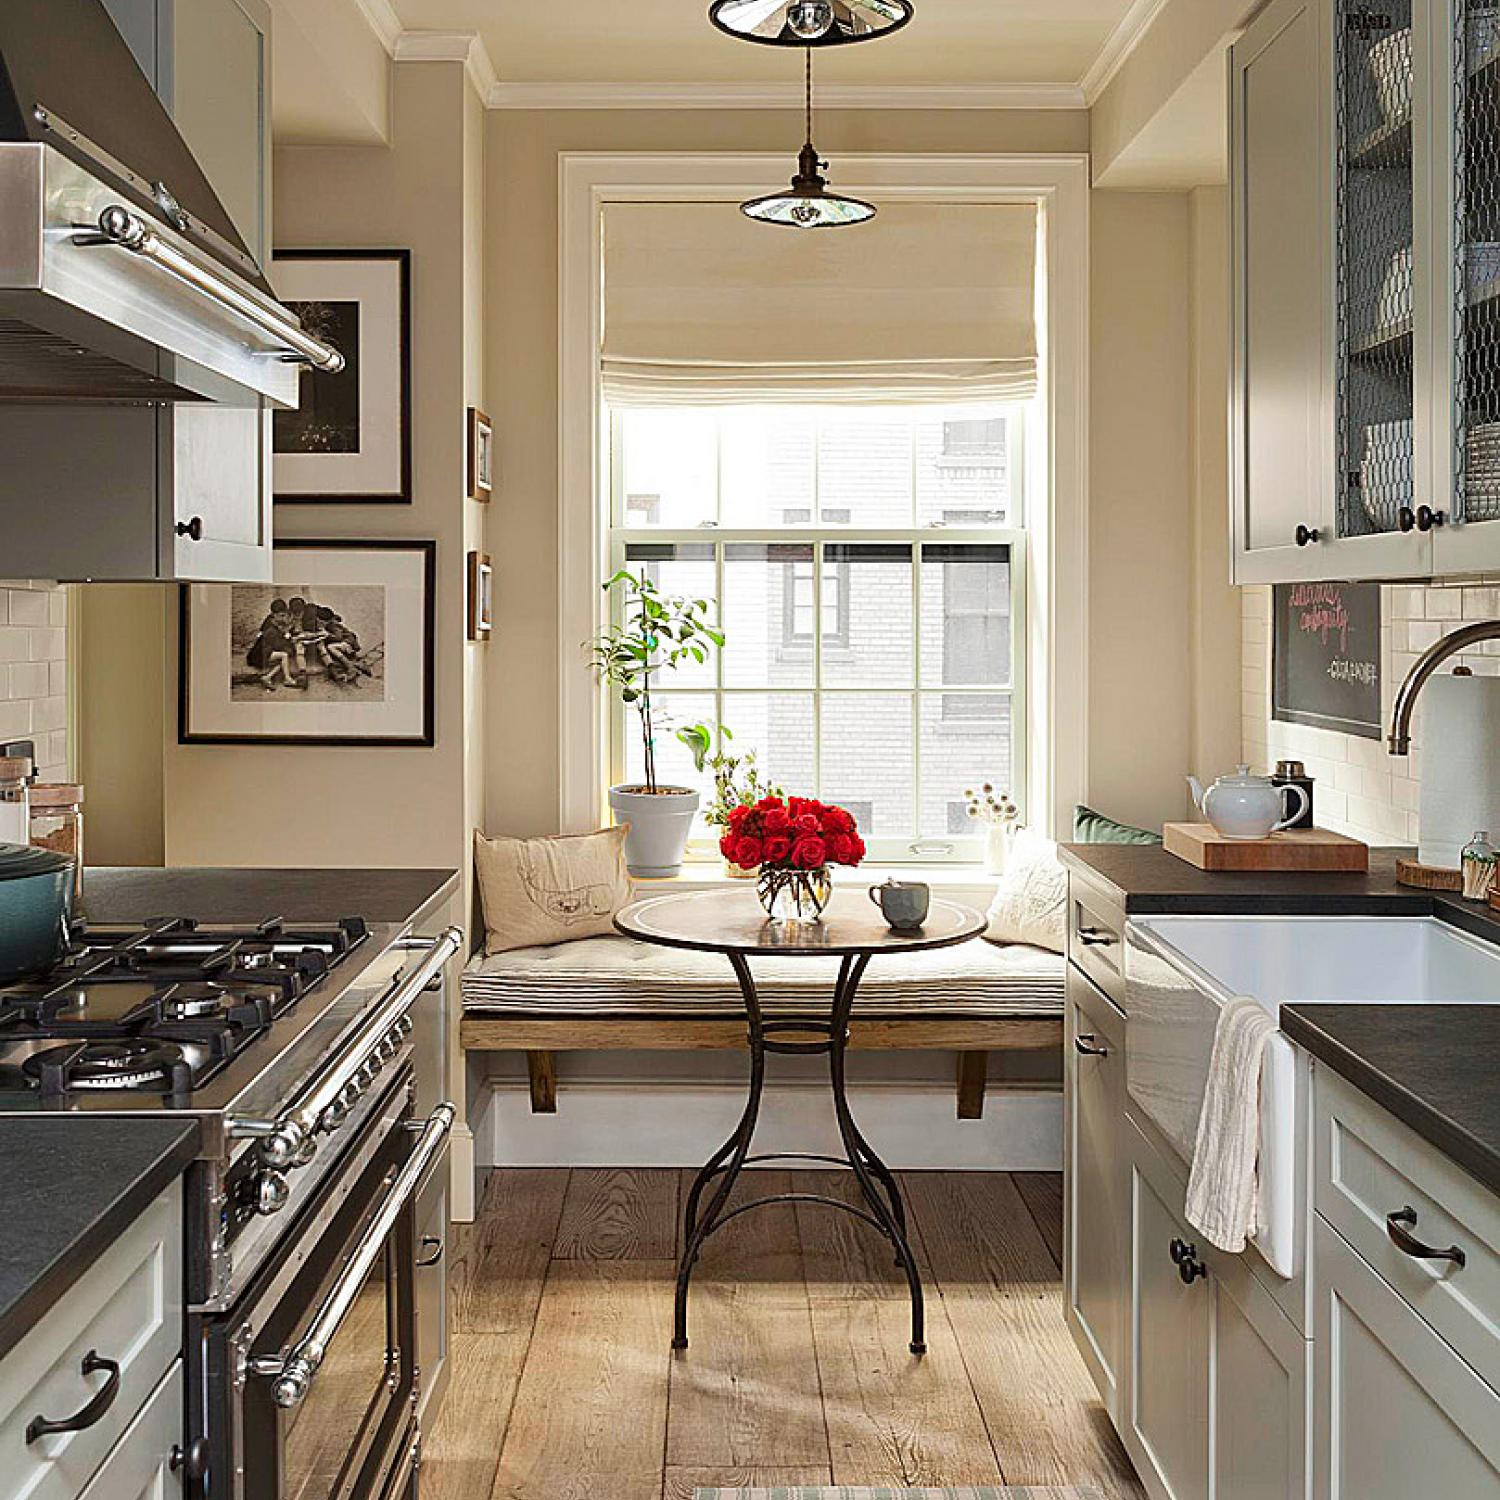 Rustic Charm in a Greenwich Village Apartment